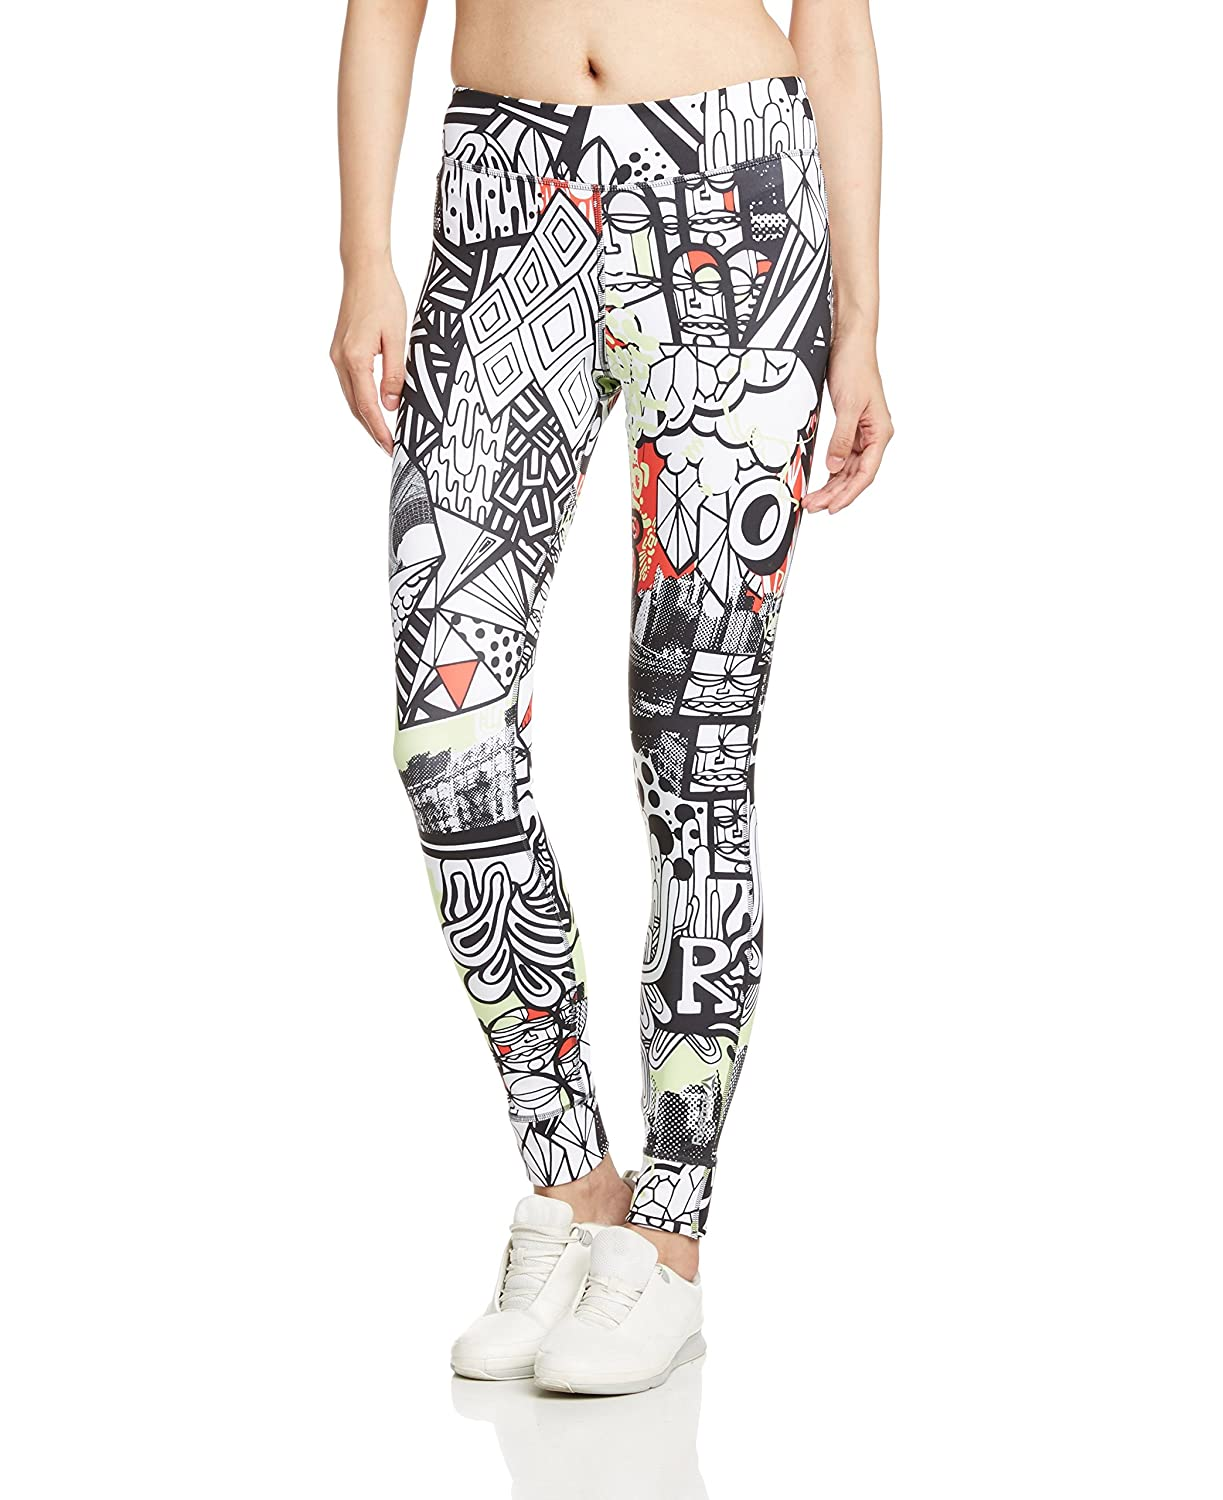 Reebok Oberbekleidung Graffiti Collab Tights